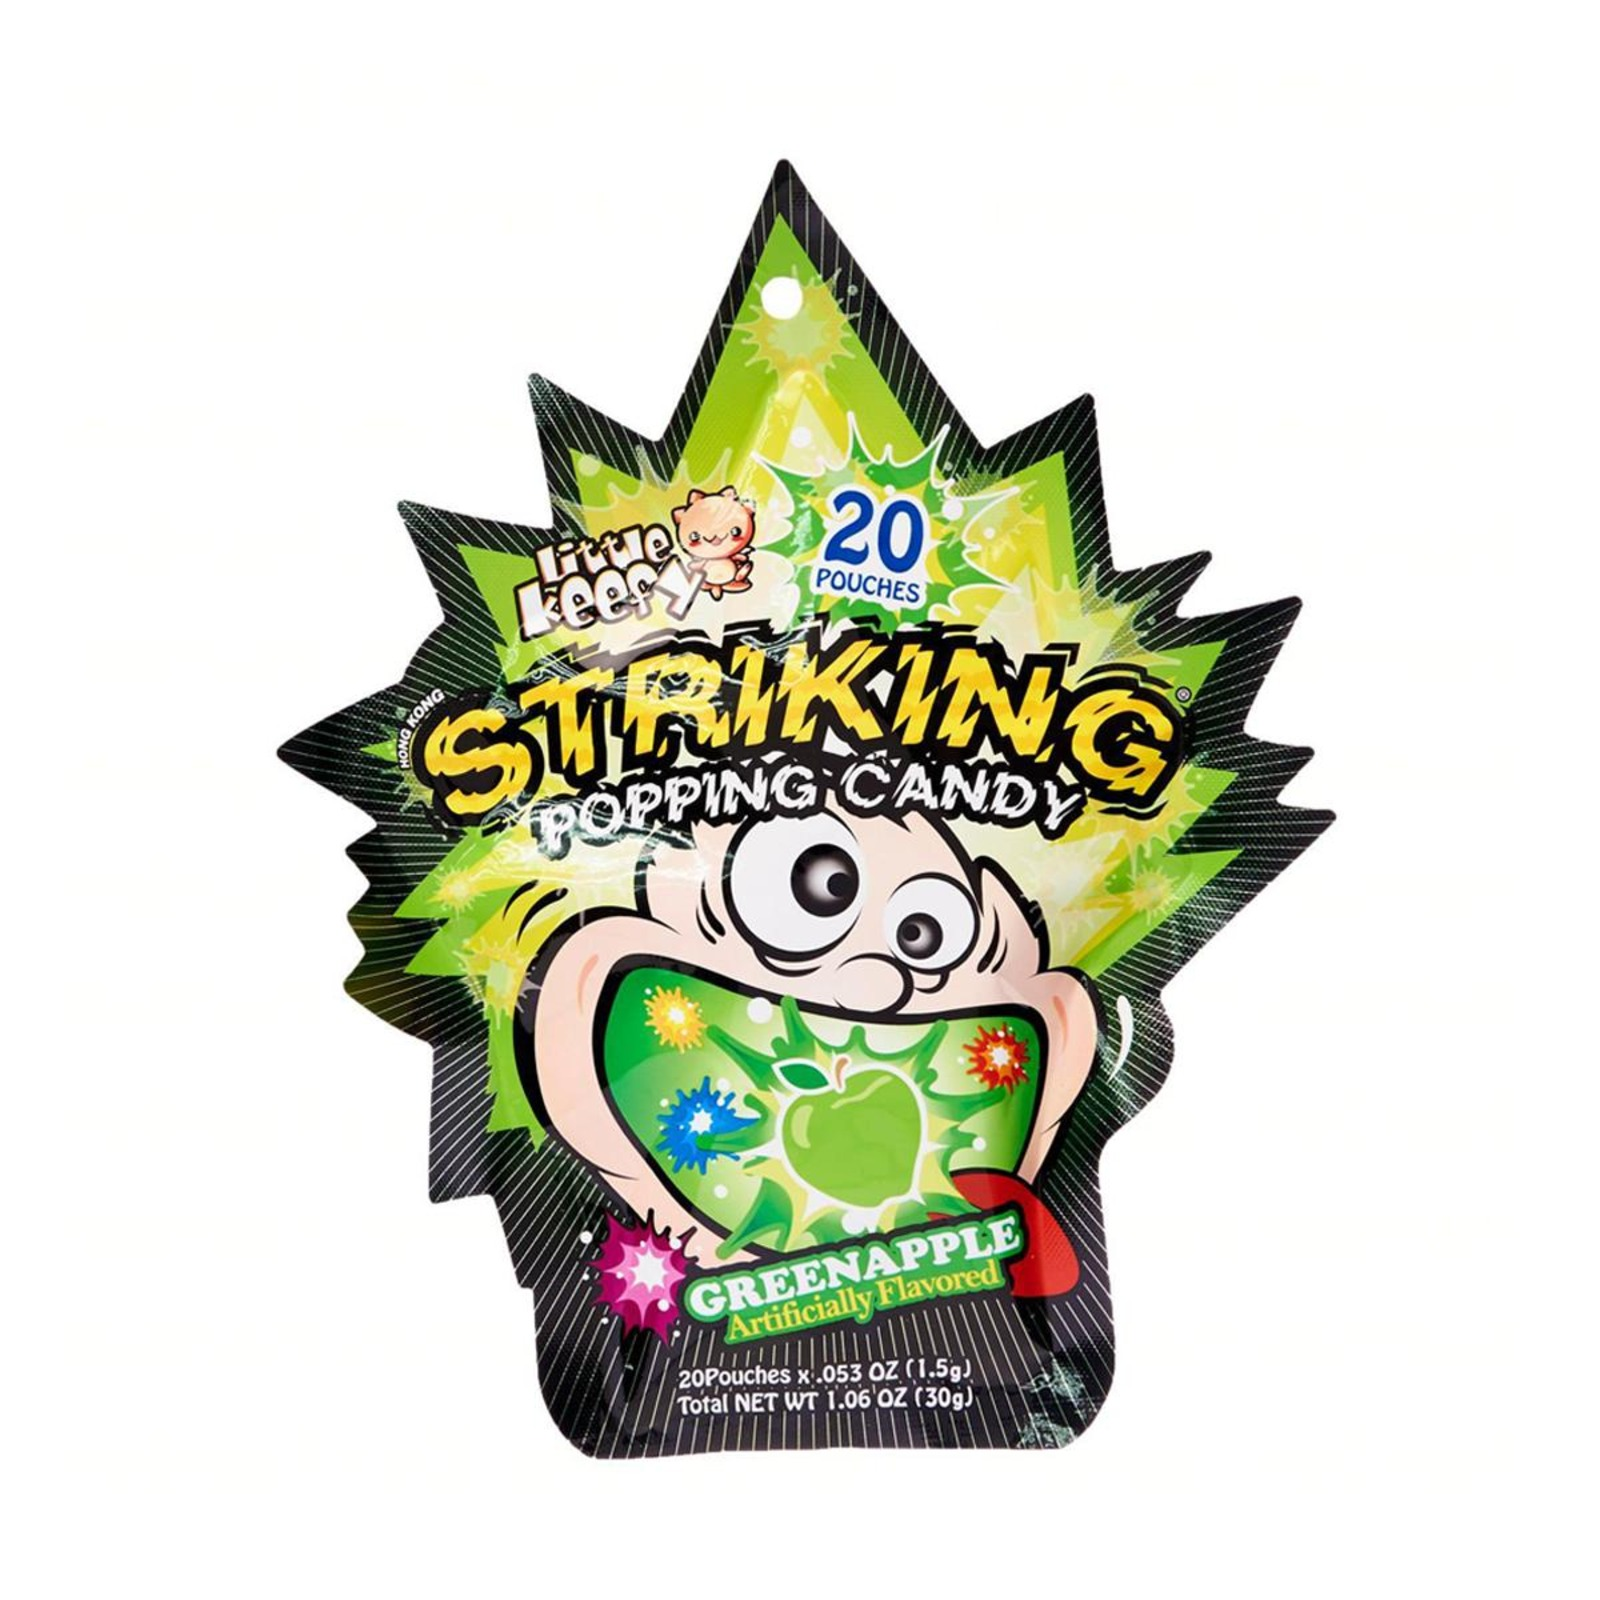 Little Keefy Striking Popping Candy - Green Apple